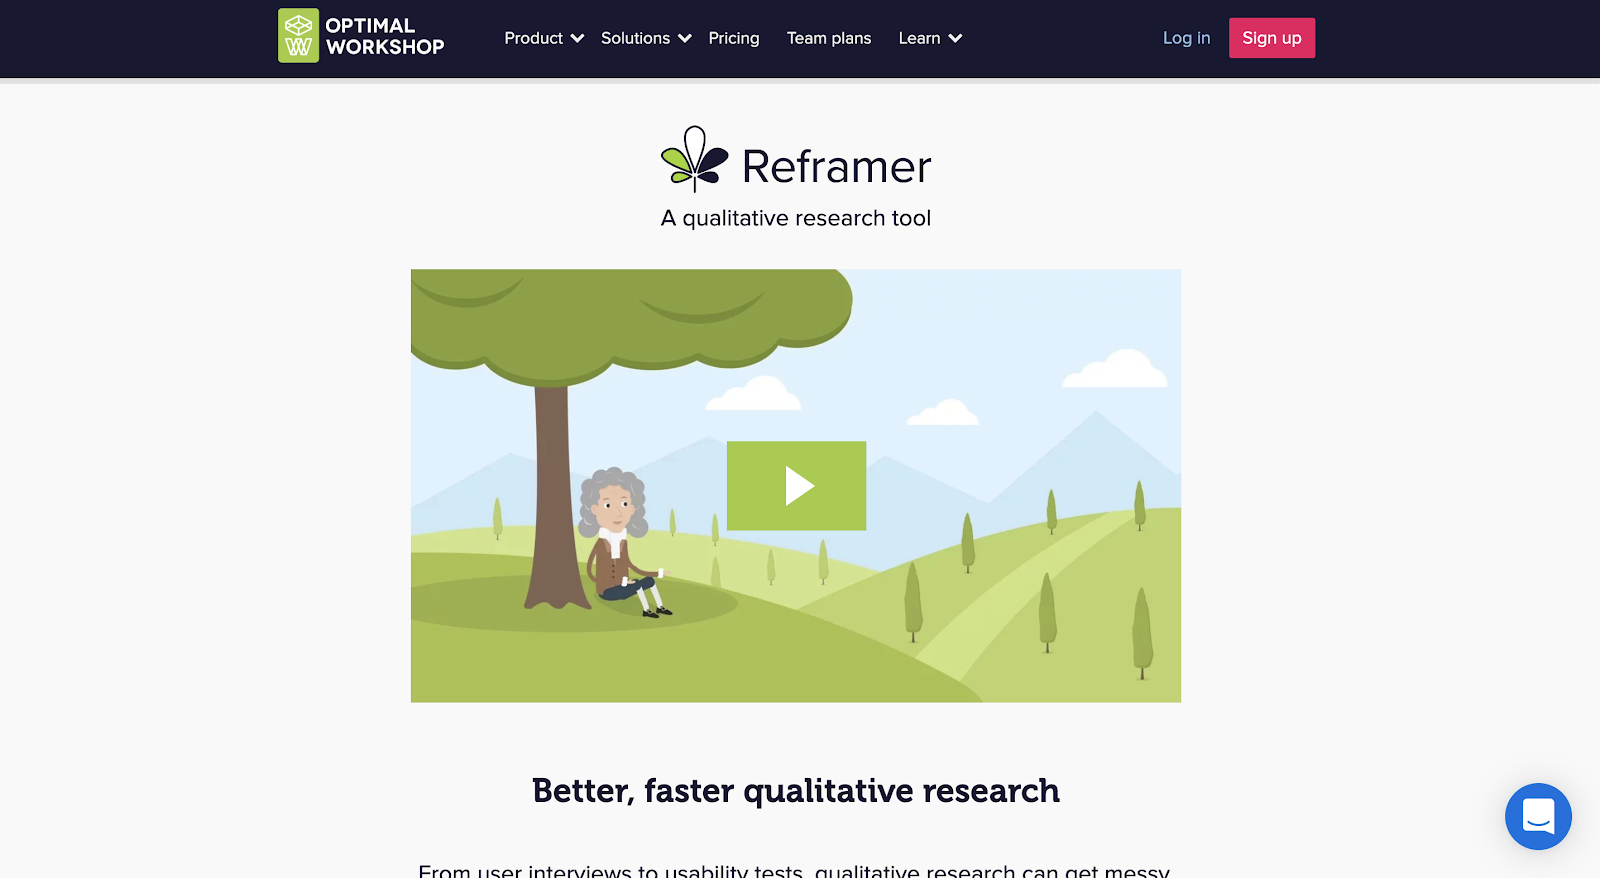 Reframer as a UX research toolbox